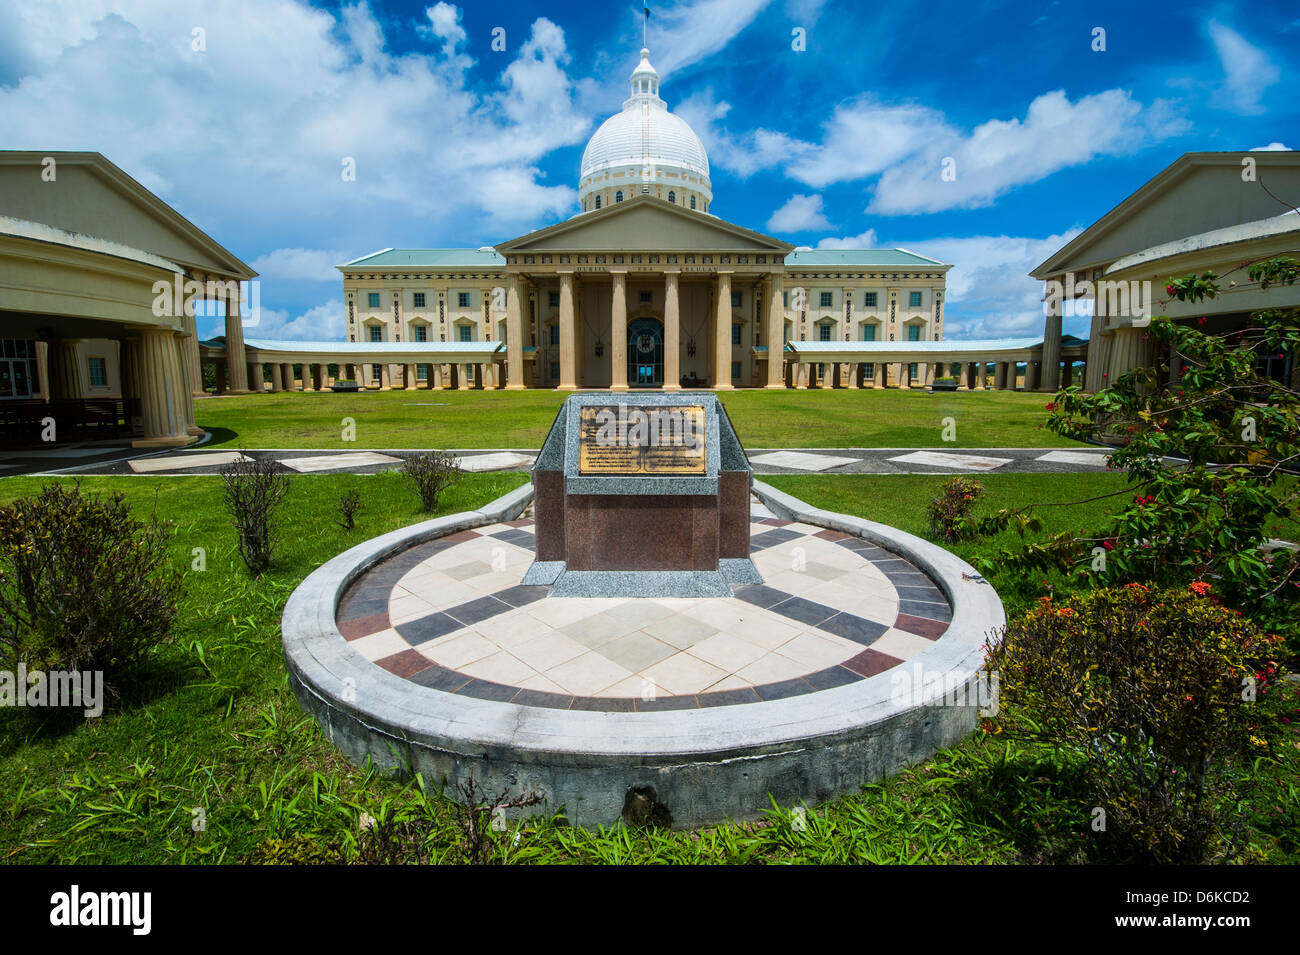 Parliament building of Palau on the Island of Babeldoab, Palau, Central Pacific, Pacific - Stock Image